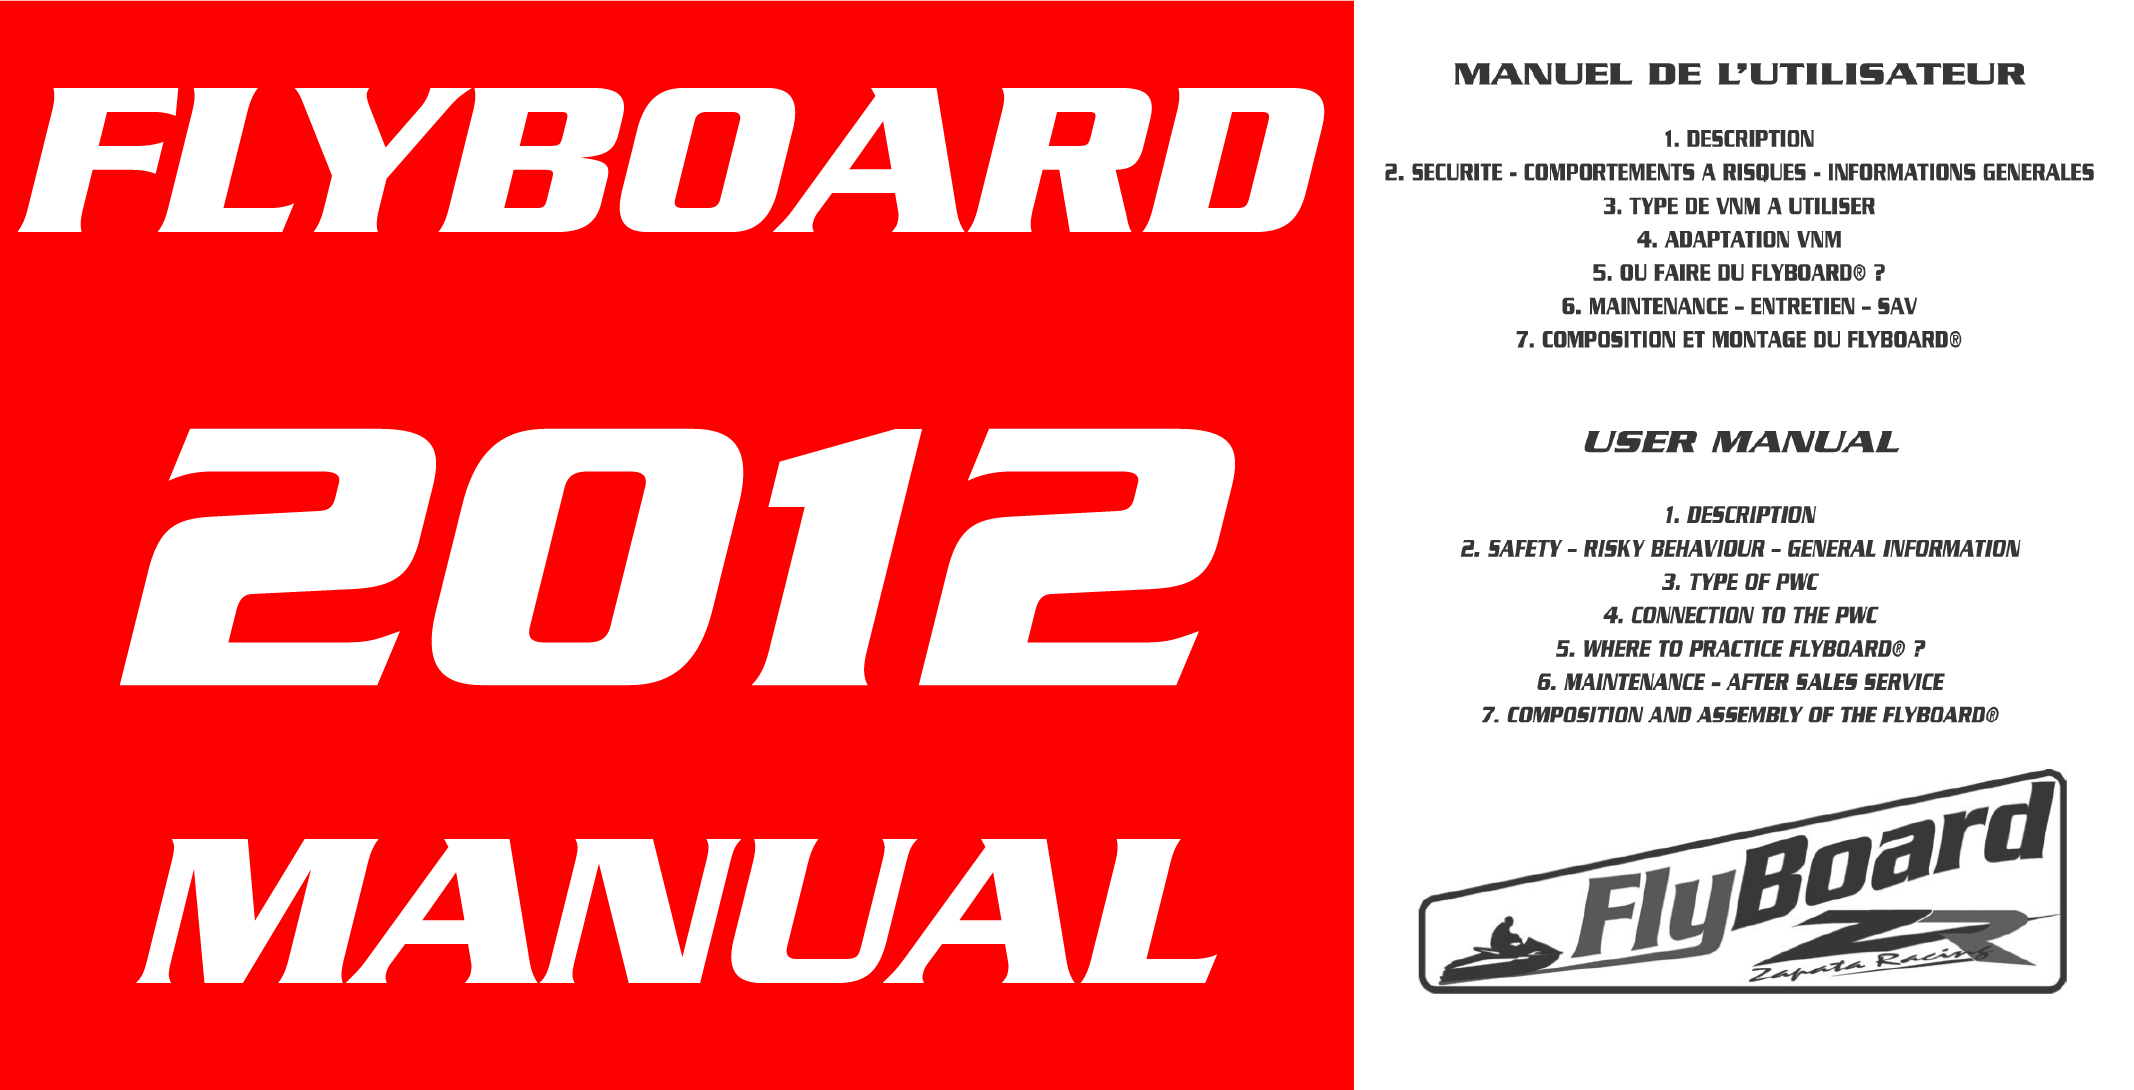 Flyboard V1 2012 Manual Download